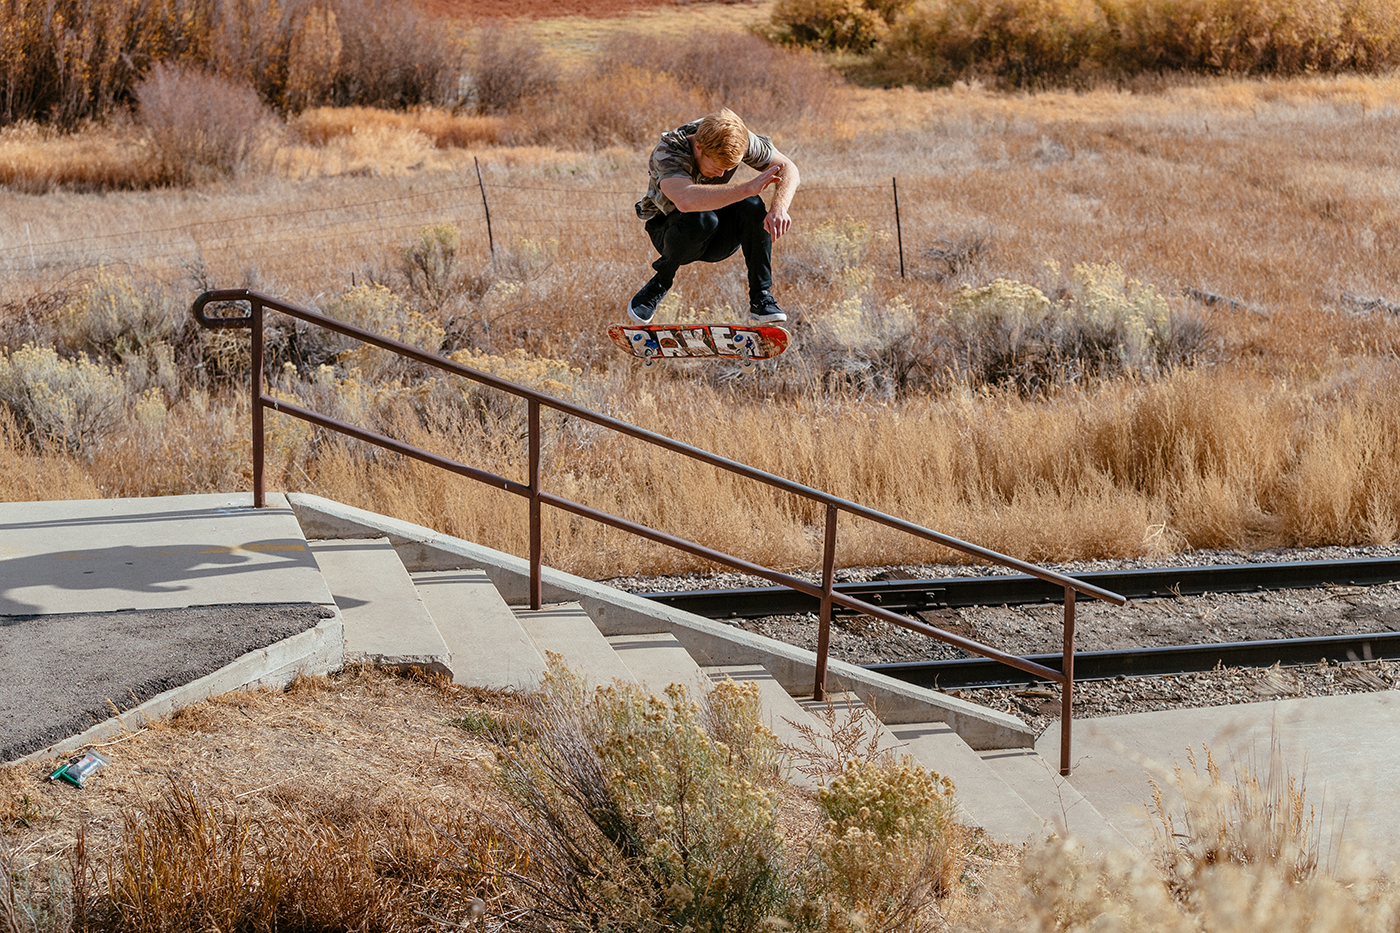 Weston Colton captured Jacob Taylor's hardflip in midair, and we're glad he did.